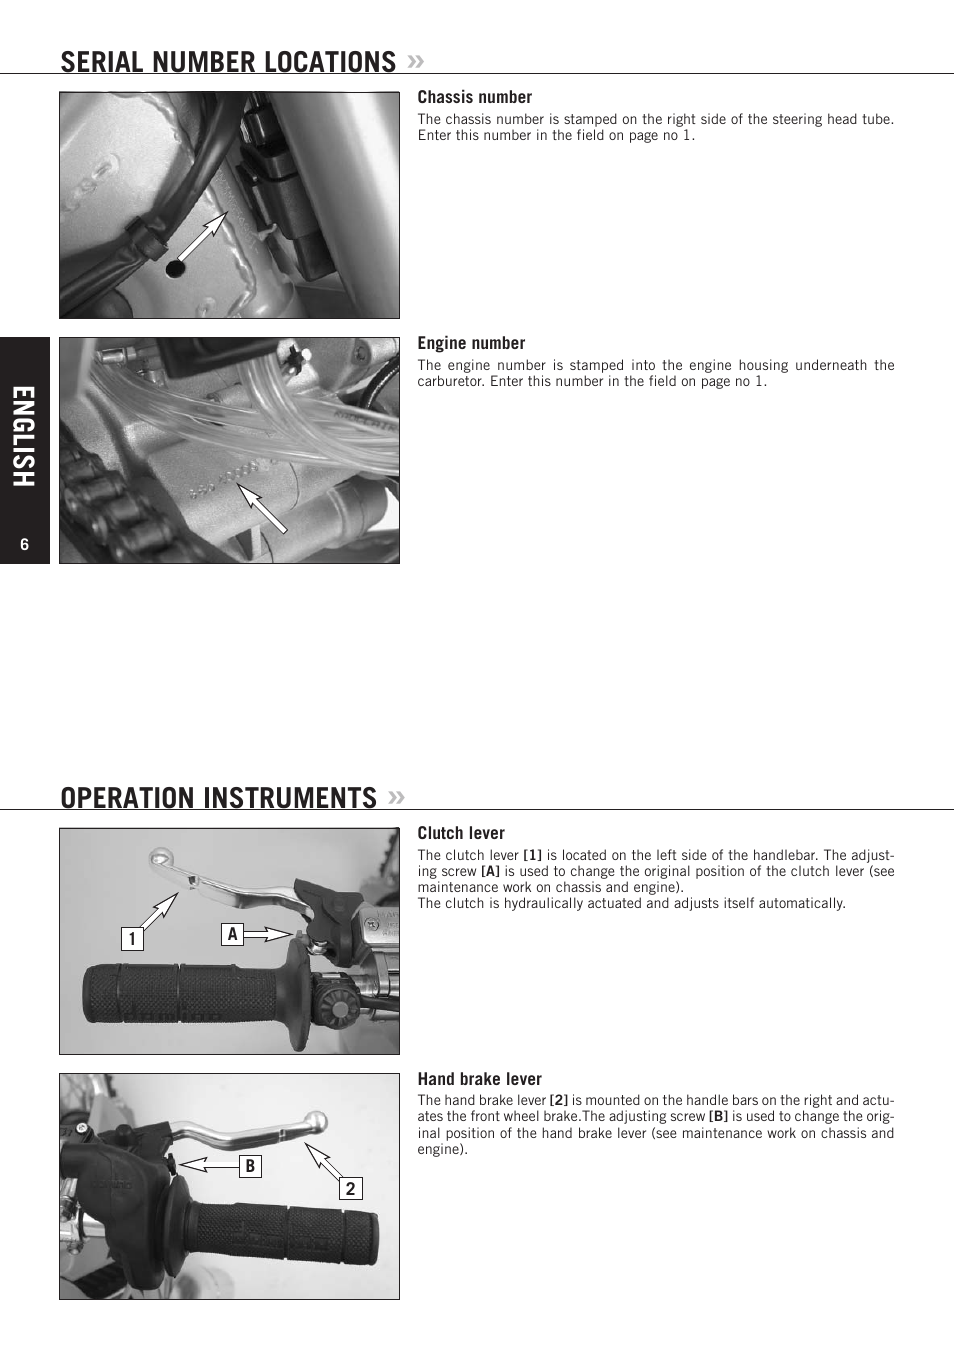 English, Serial number locations, Operation instruments